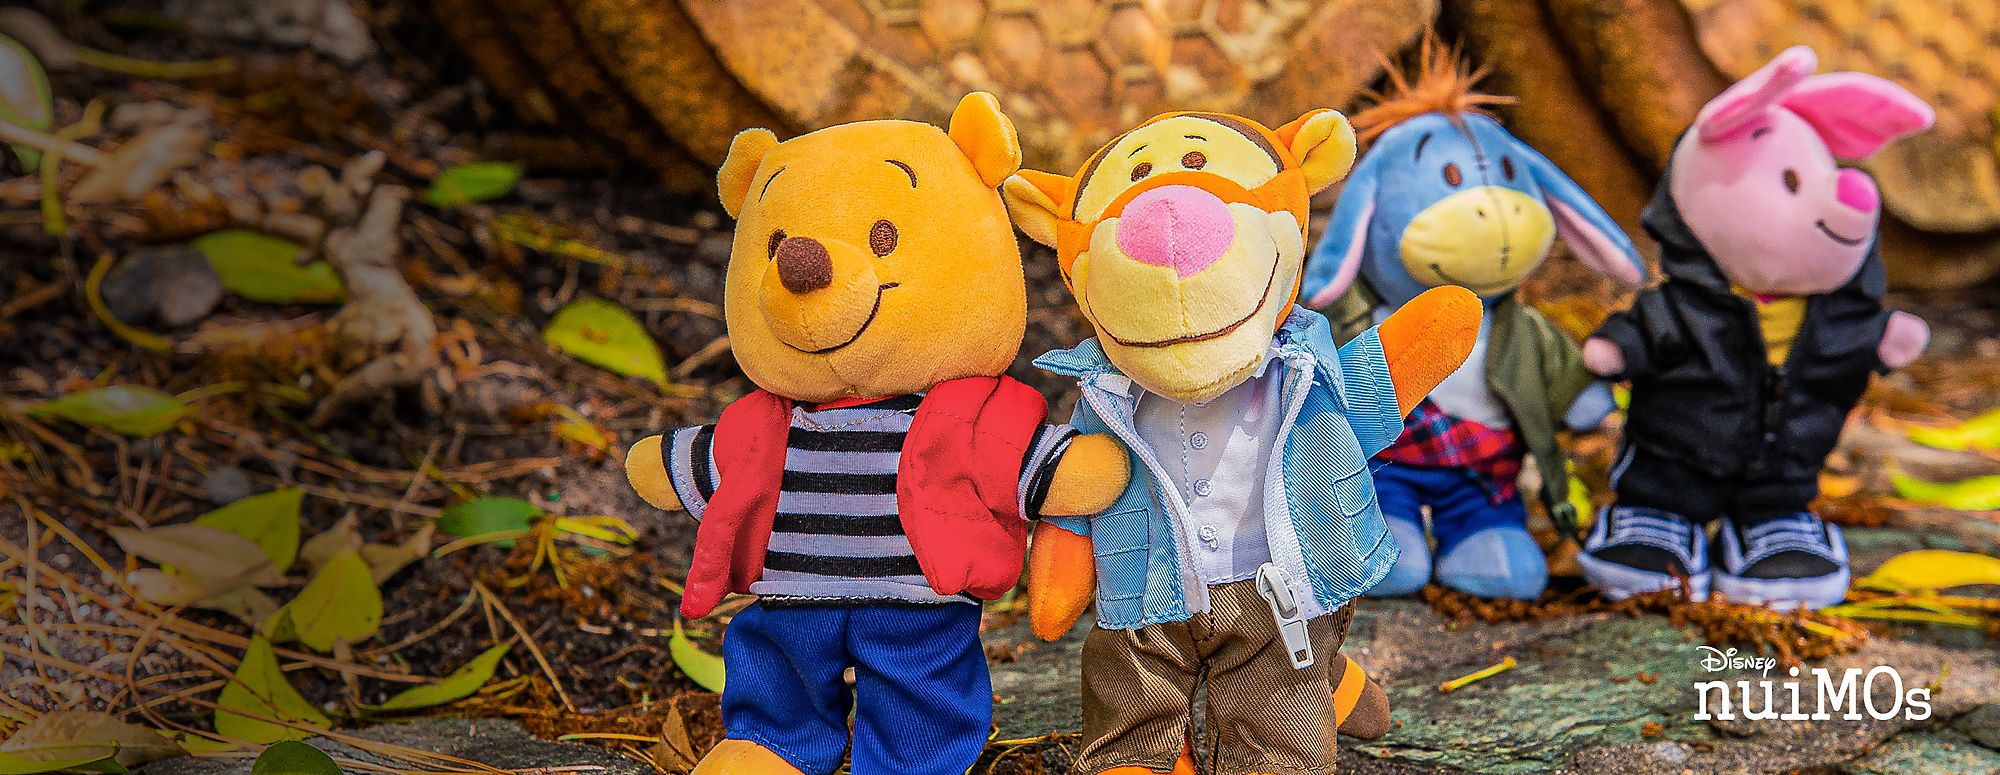 New from Deep in the Hundred Acre Wood Winnie the Pooh & friends are the latest addition to the Disney nuiMOs soft toys family! SHOP NOW